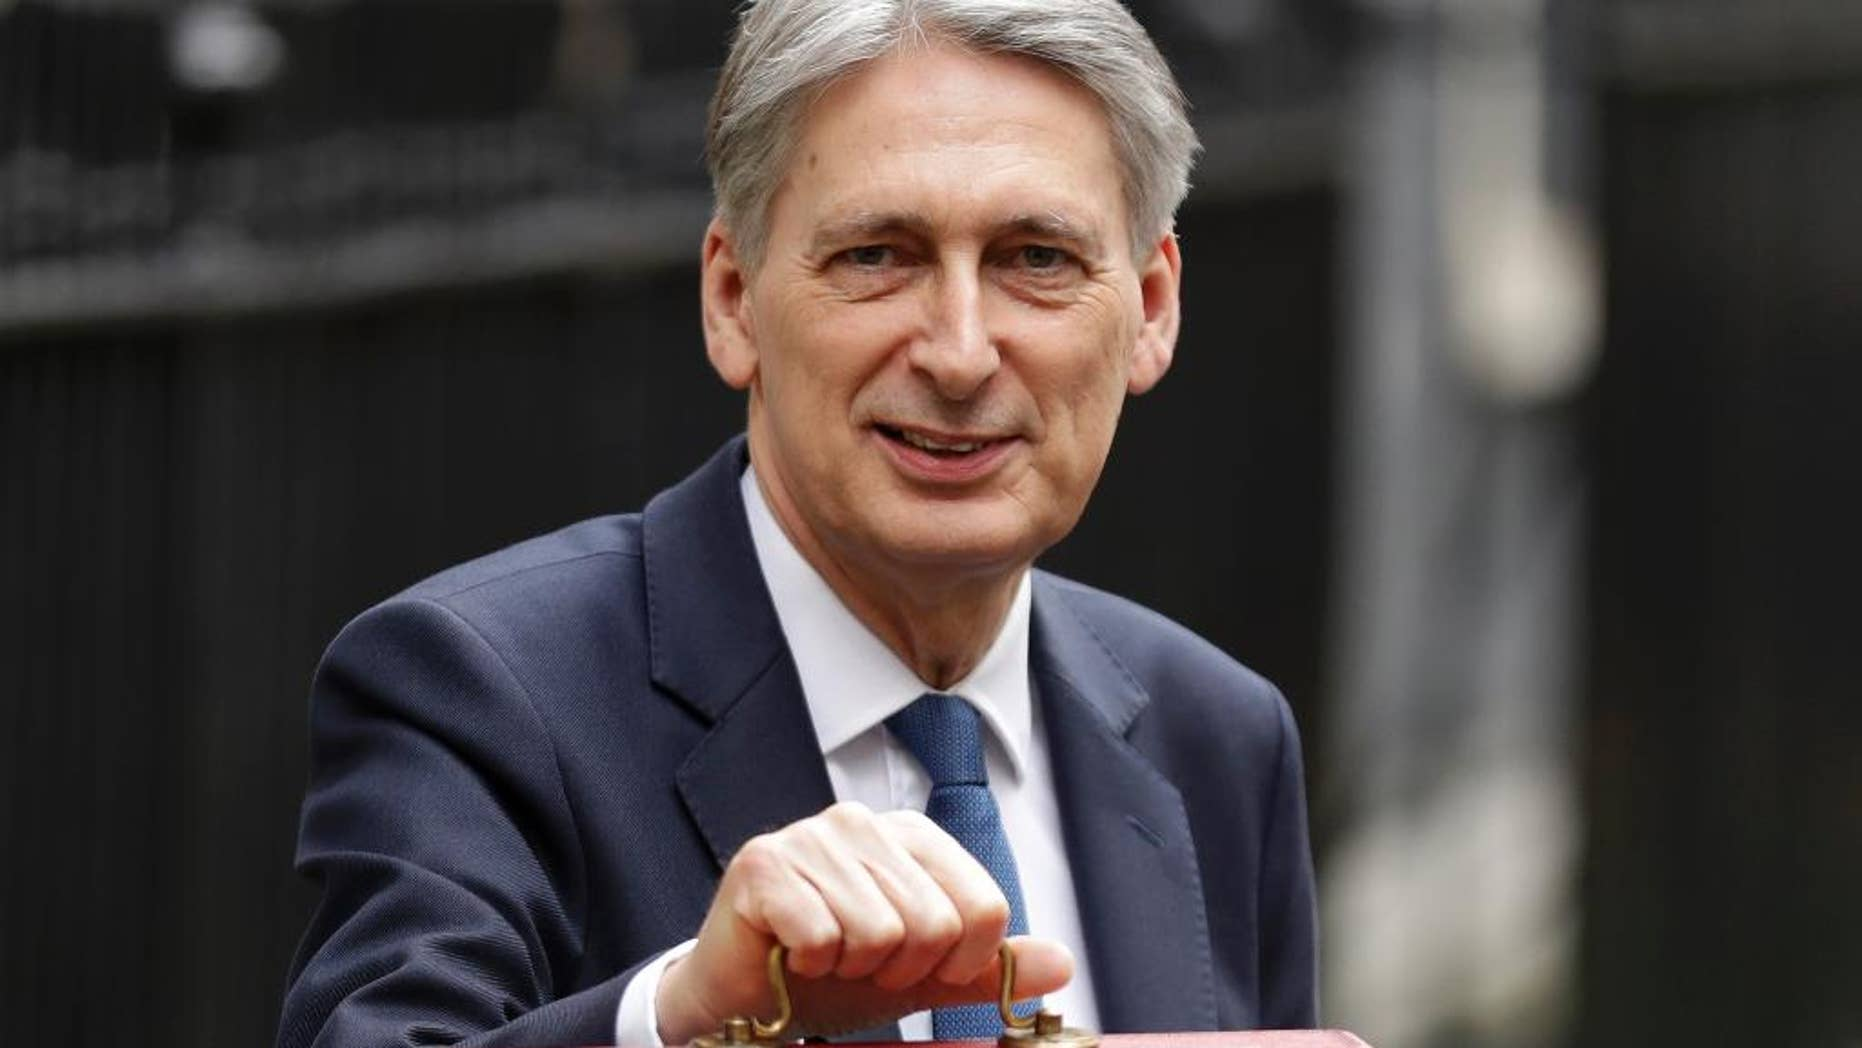 FILE - In this Wednesday, March 8, 2017 file photo, Britain's Chancellor of the Exchequer Philip Hammond poses for the media with his traditional red dispatch box before delivering his annual budget speech to Parliament in London. Britain's Treasury chief has told lawmakers in his Conservative Party on Wednesday, March 15 that the government will not go ahead with plans for higher taxes on self-employed workers after the plans touched off outrage from within the Tory ranks. Philip Hammond announced an increase in National Insurance contributions for the self-employed in his budget last week. (AP Photo/Matt Dunham, file)